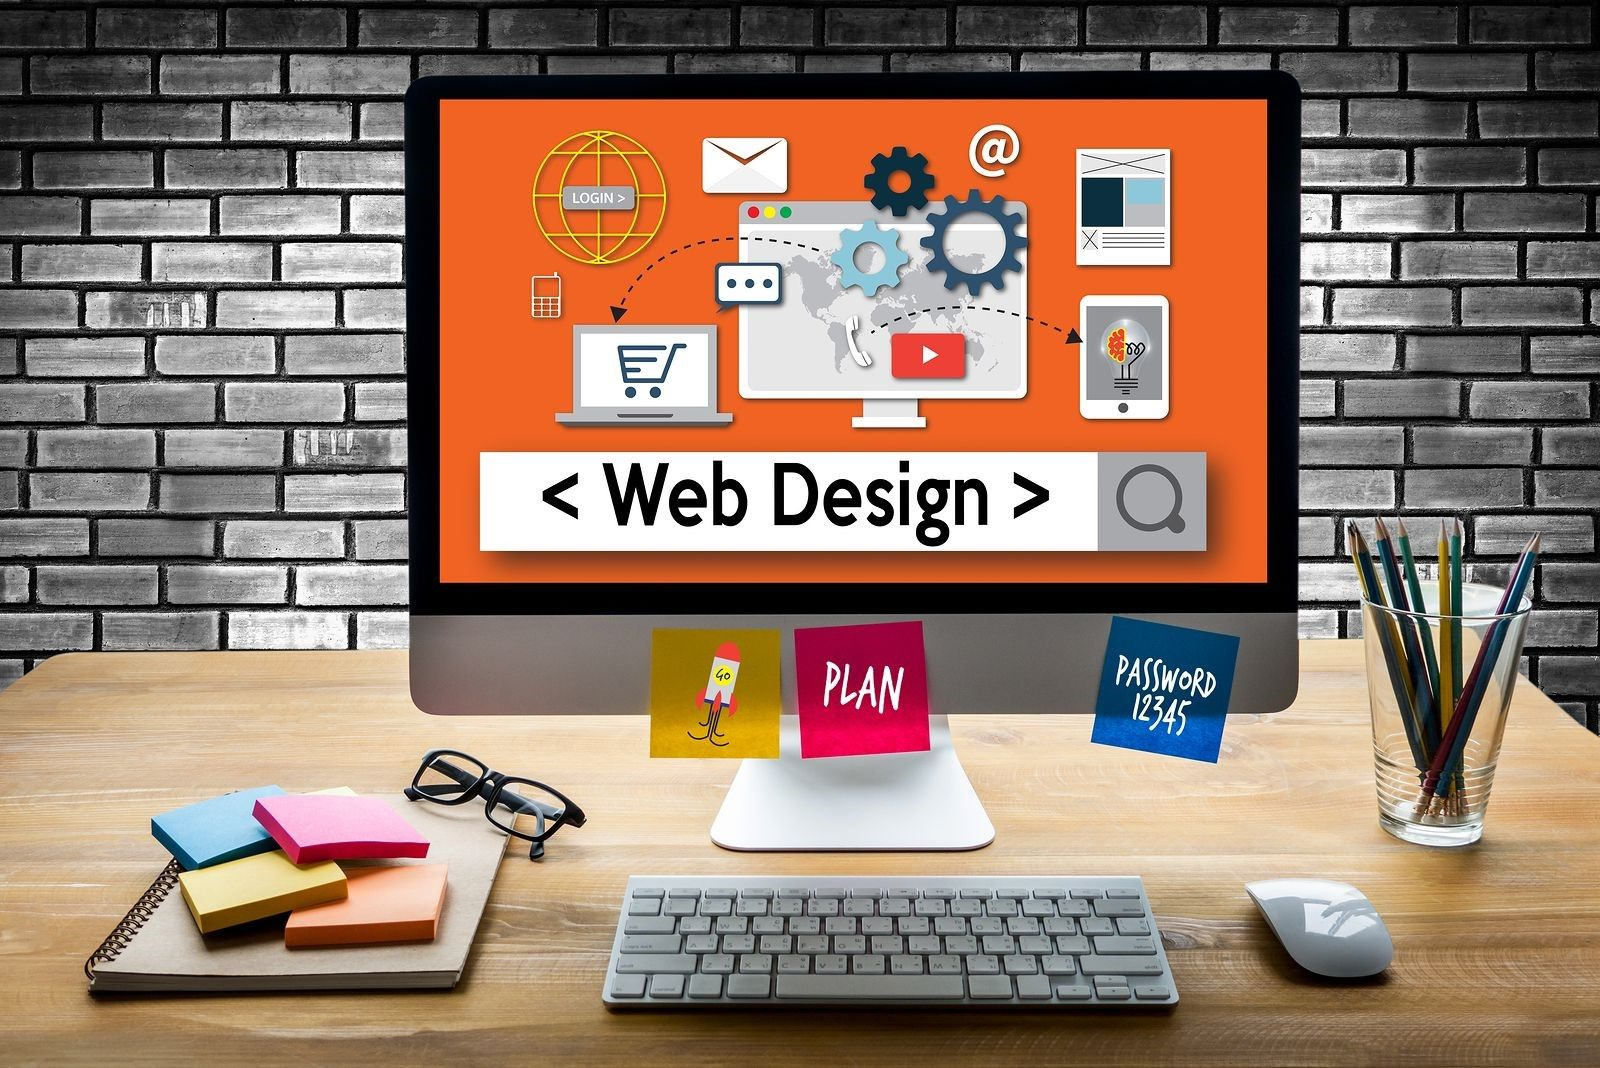 Keen Web Designers Know That User Experience Is of Utmost Importance